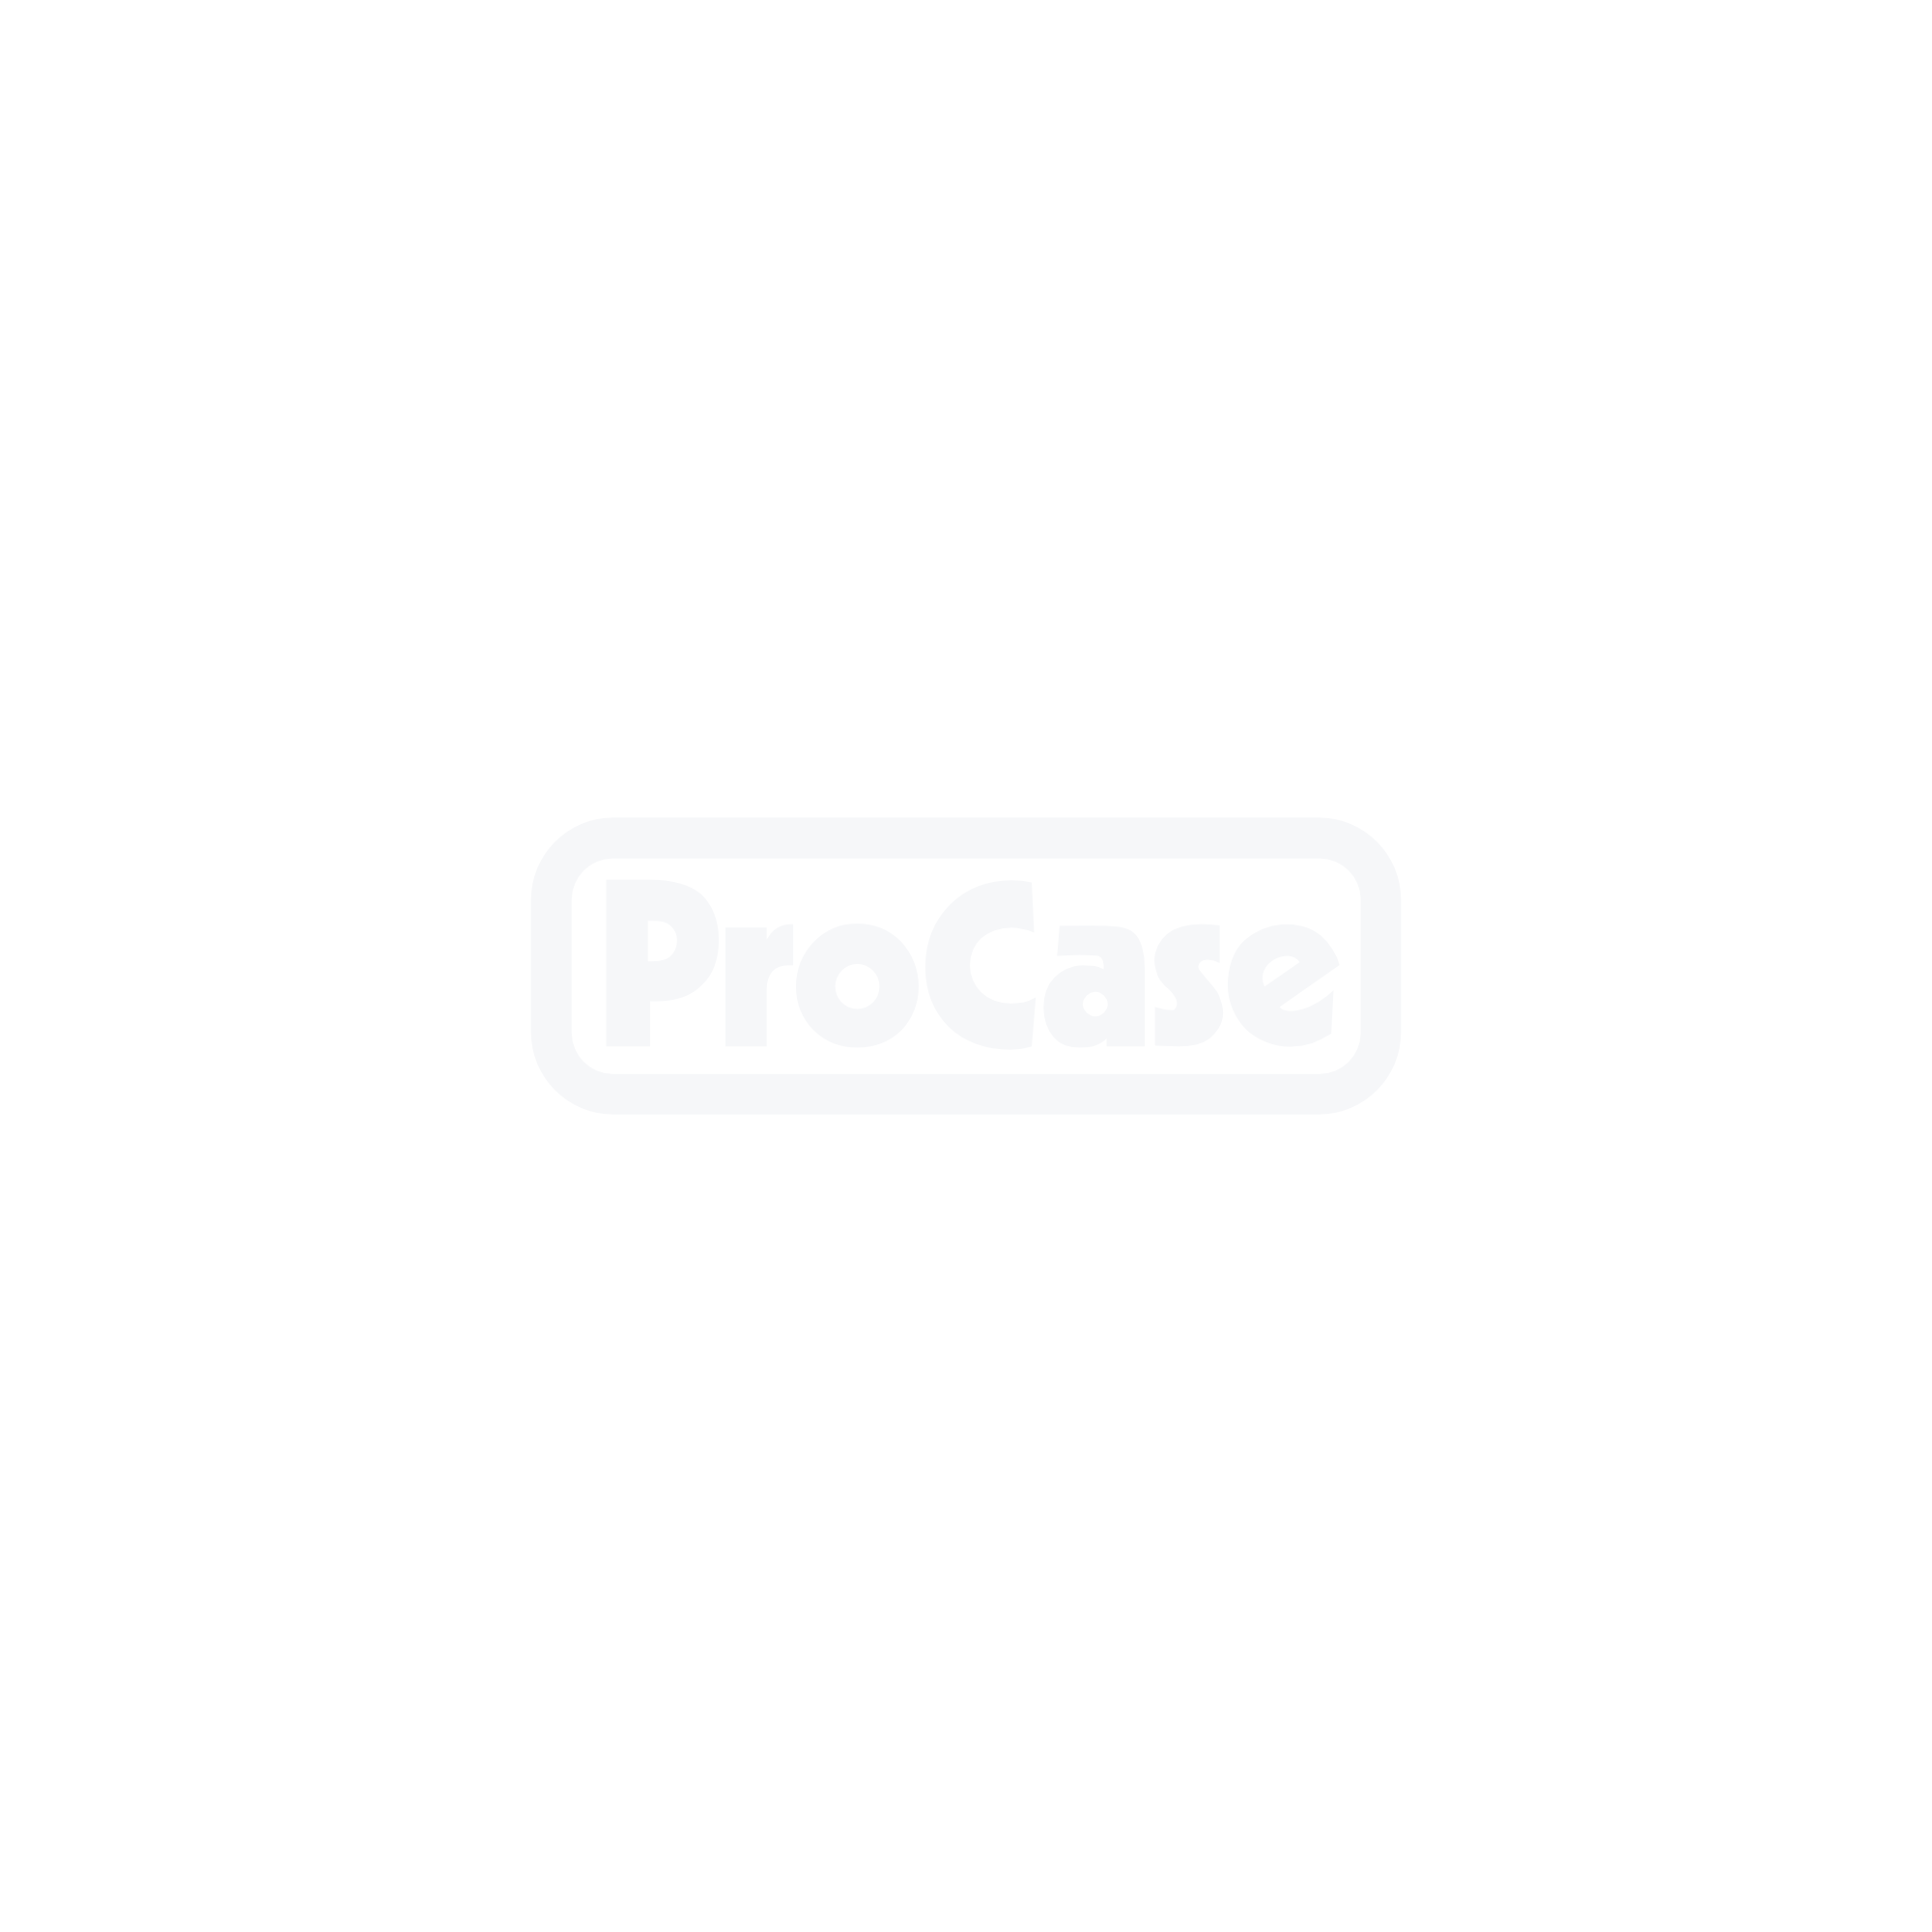 Flightcase für 2 Panasonic TH-50 PHW 6EX